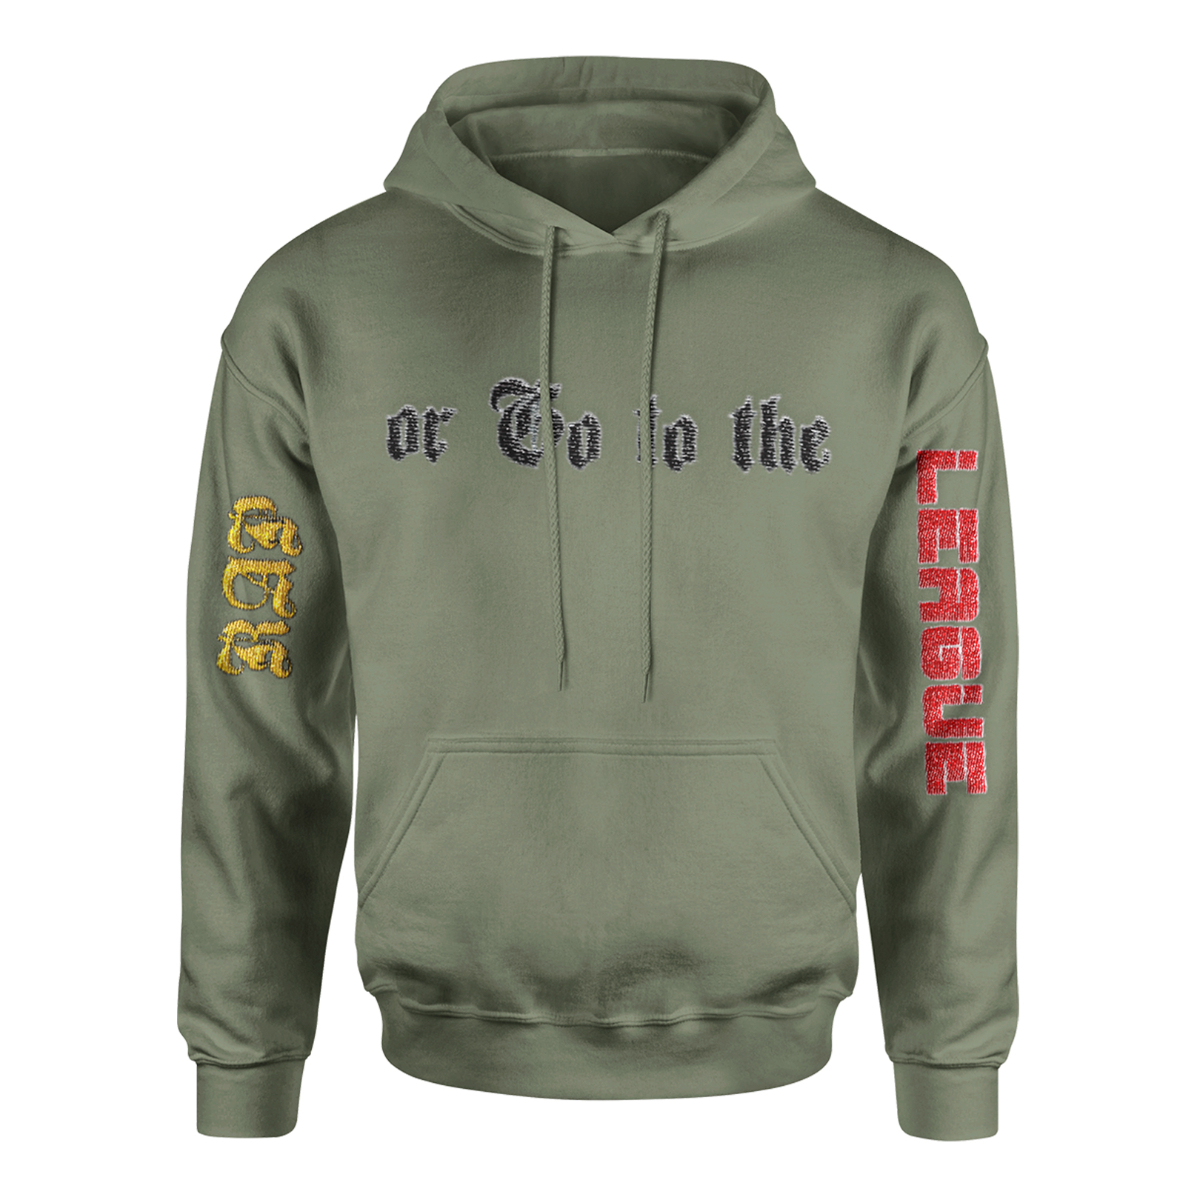 ROGTTL Hoodie [Army Green] + Download